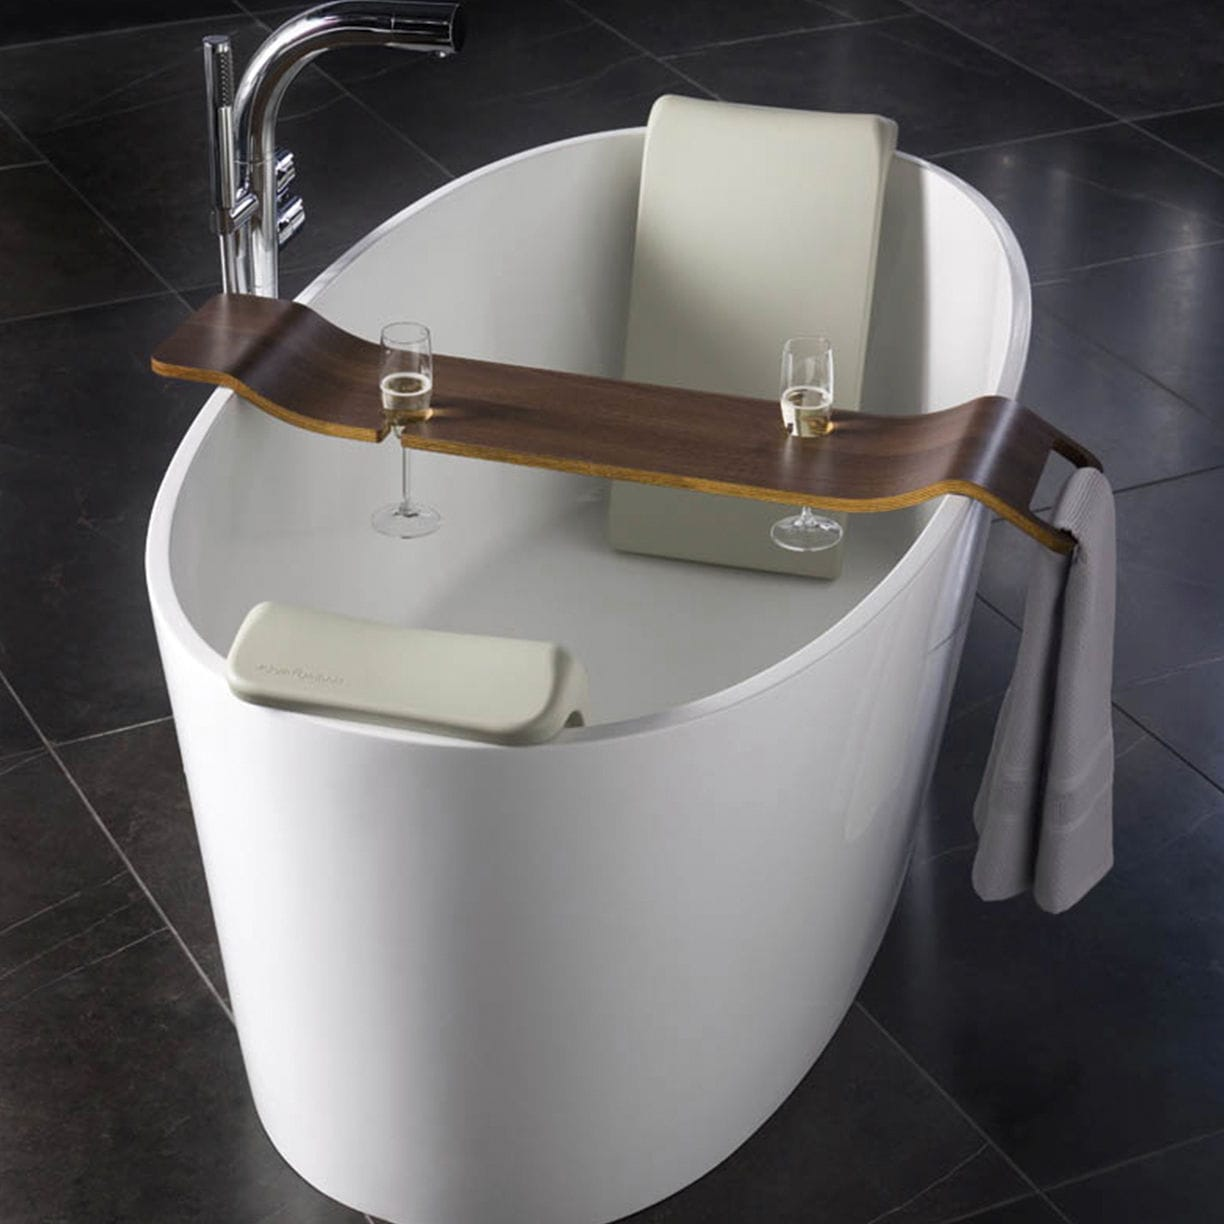 Bathtub backrest headrest - Bathroom Backrest Luxury